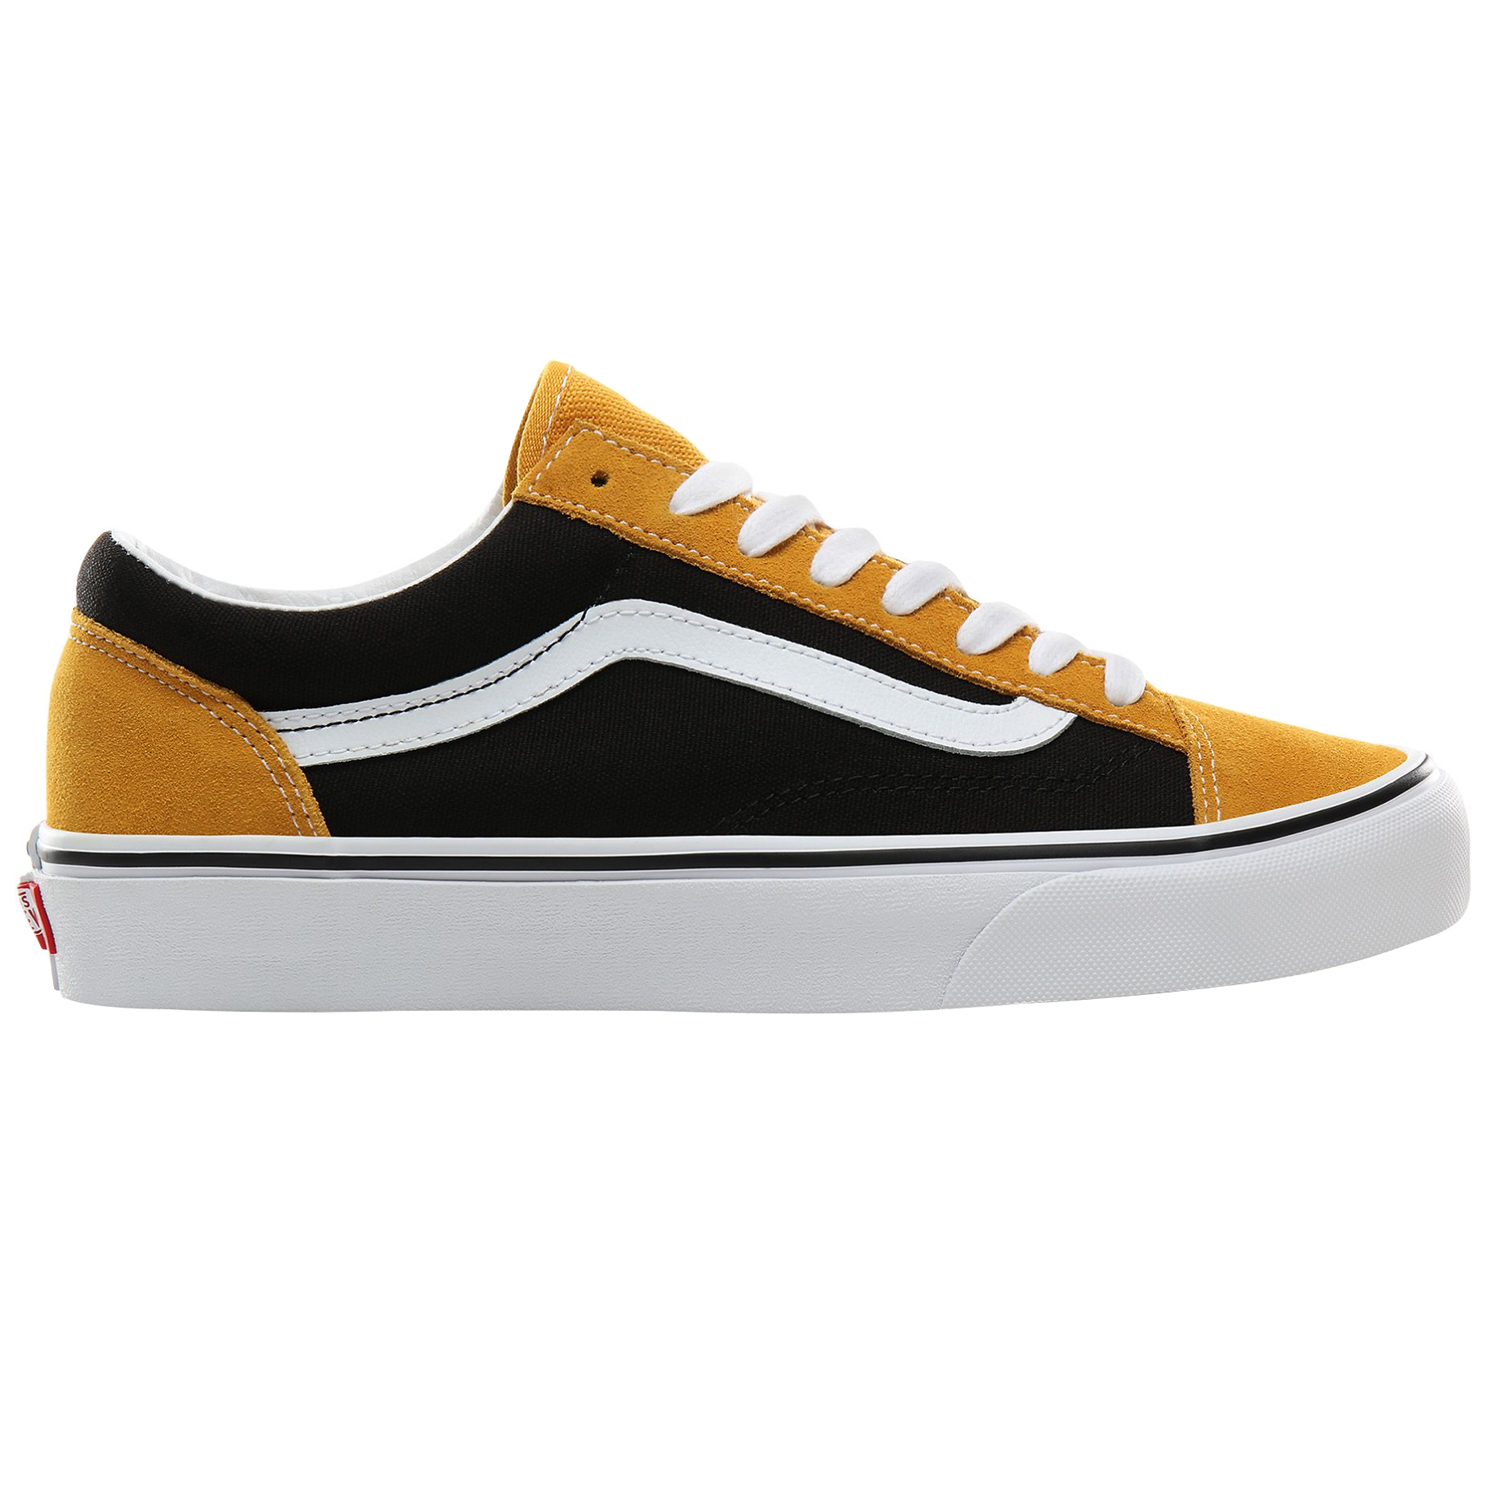 Vans Style 36 Buty available from Blackleaf